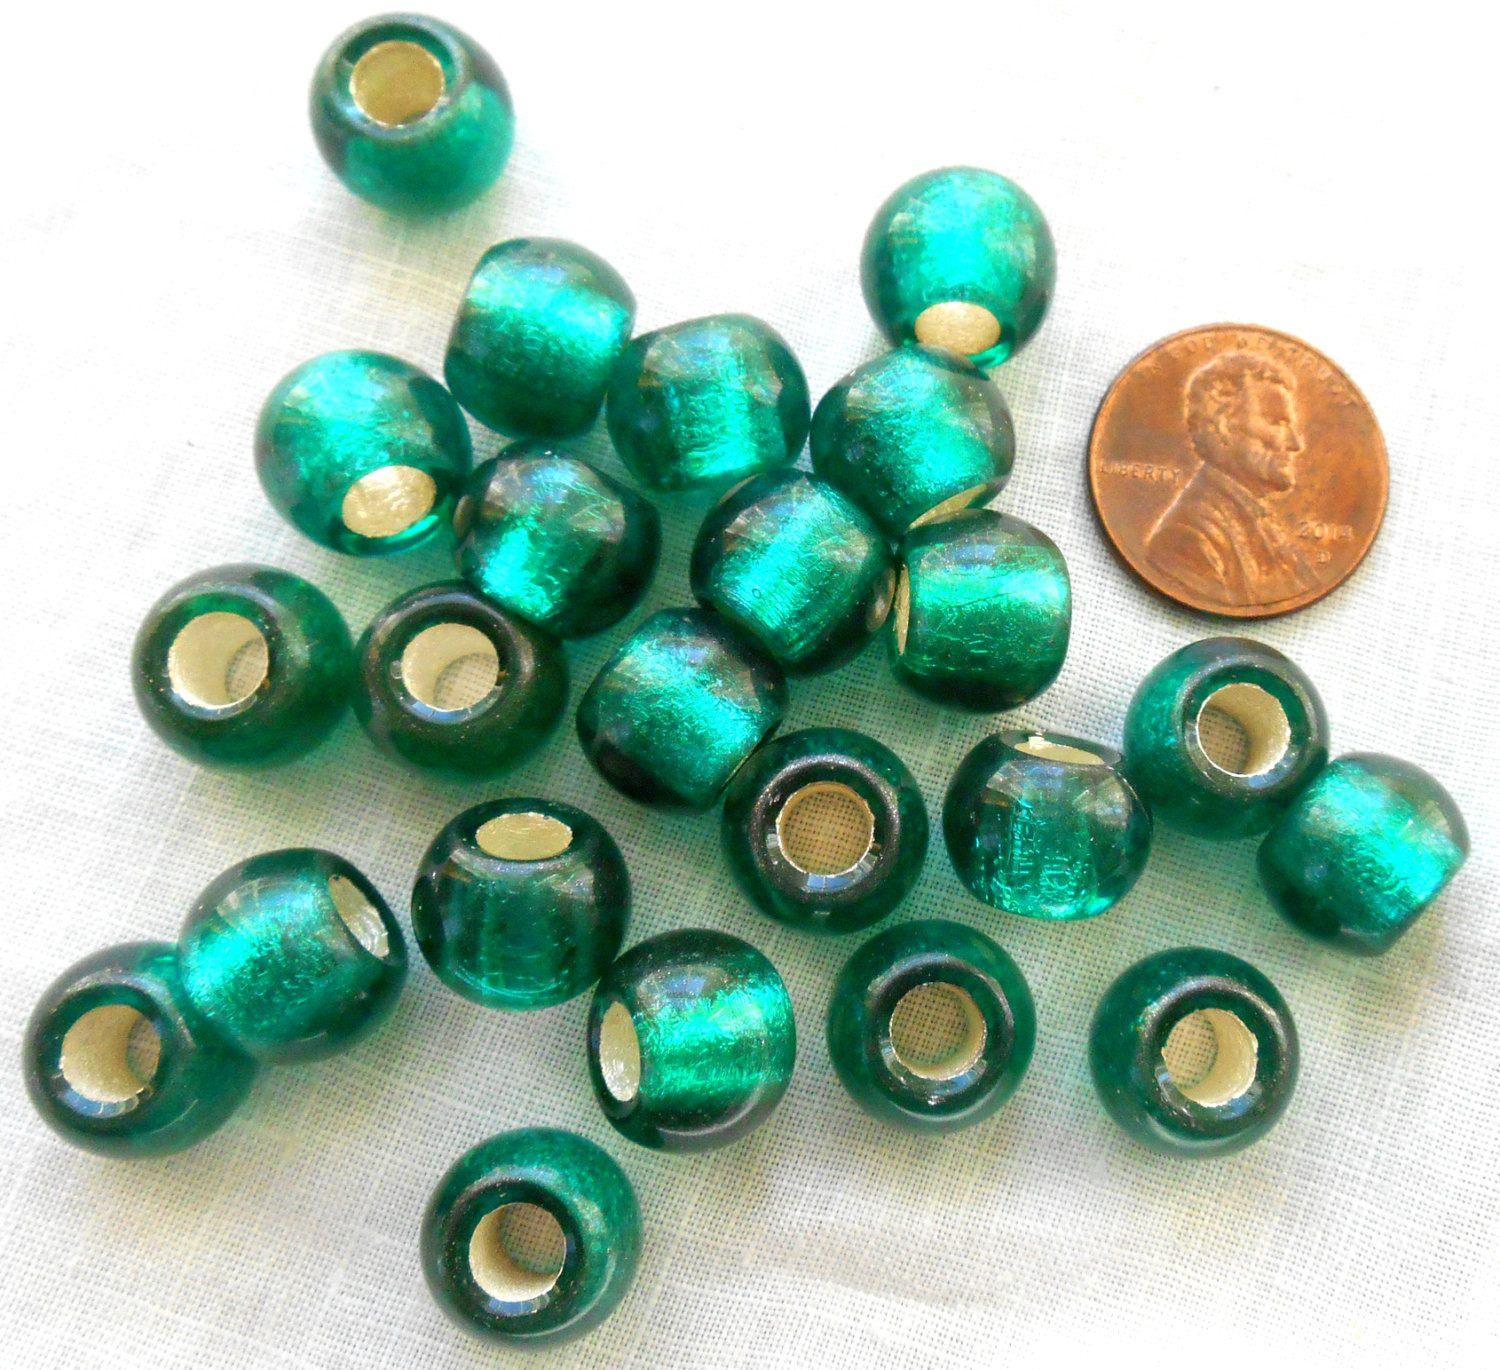 373ecb591 ... Six round Teal, Blue Green Siver Lined large 12mm glass beads, big 4.5mm